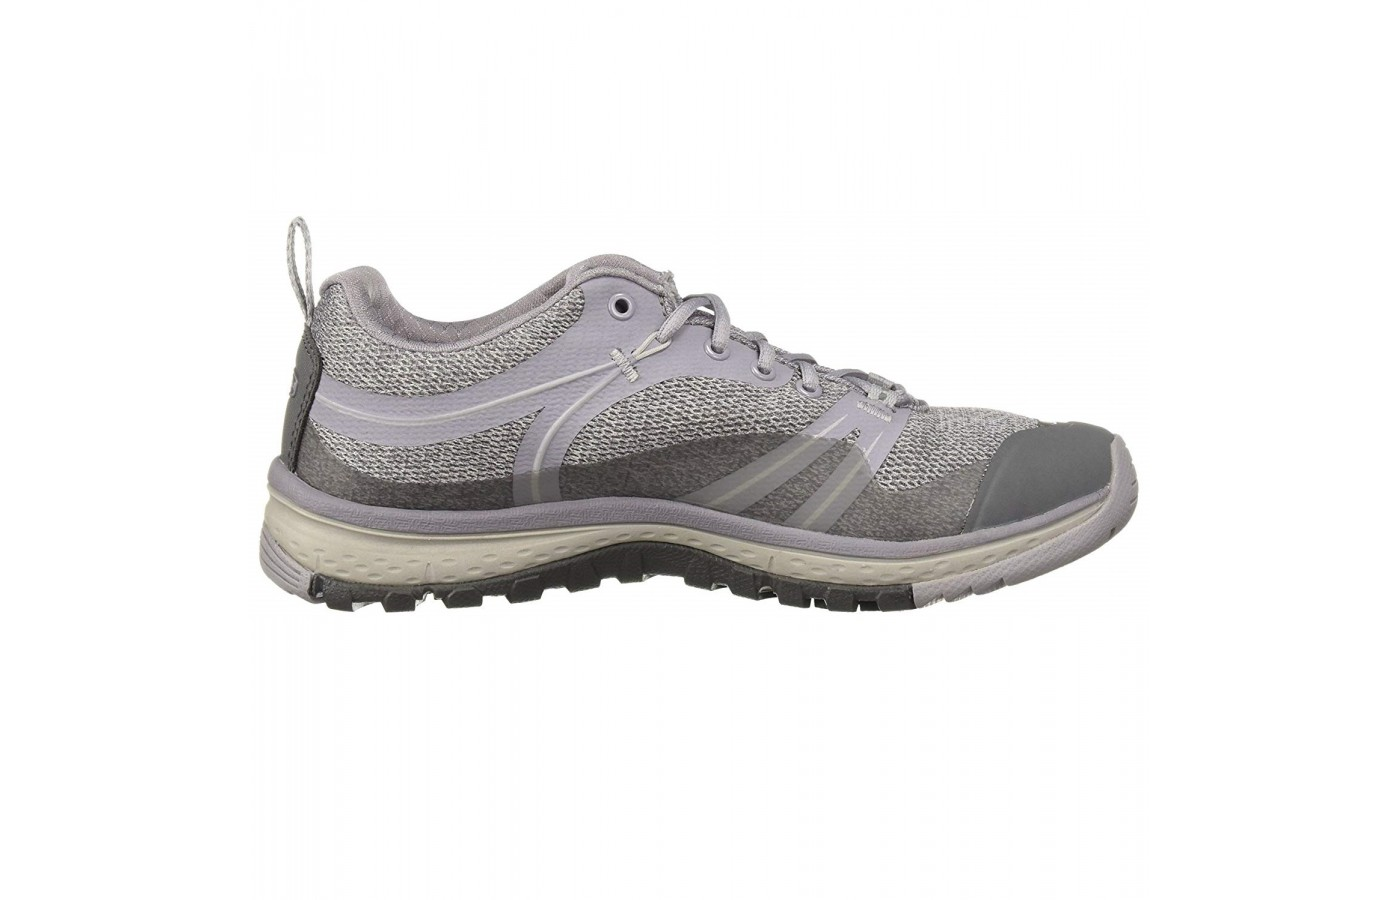 The Keen Terradora also offers multi-directional lug which helps with traction during hikes.